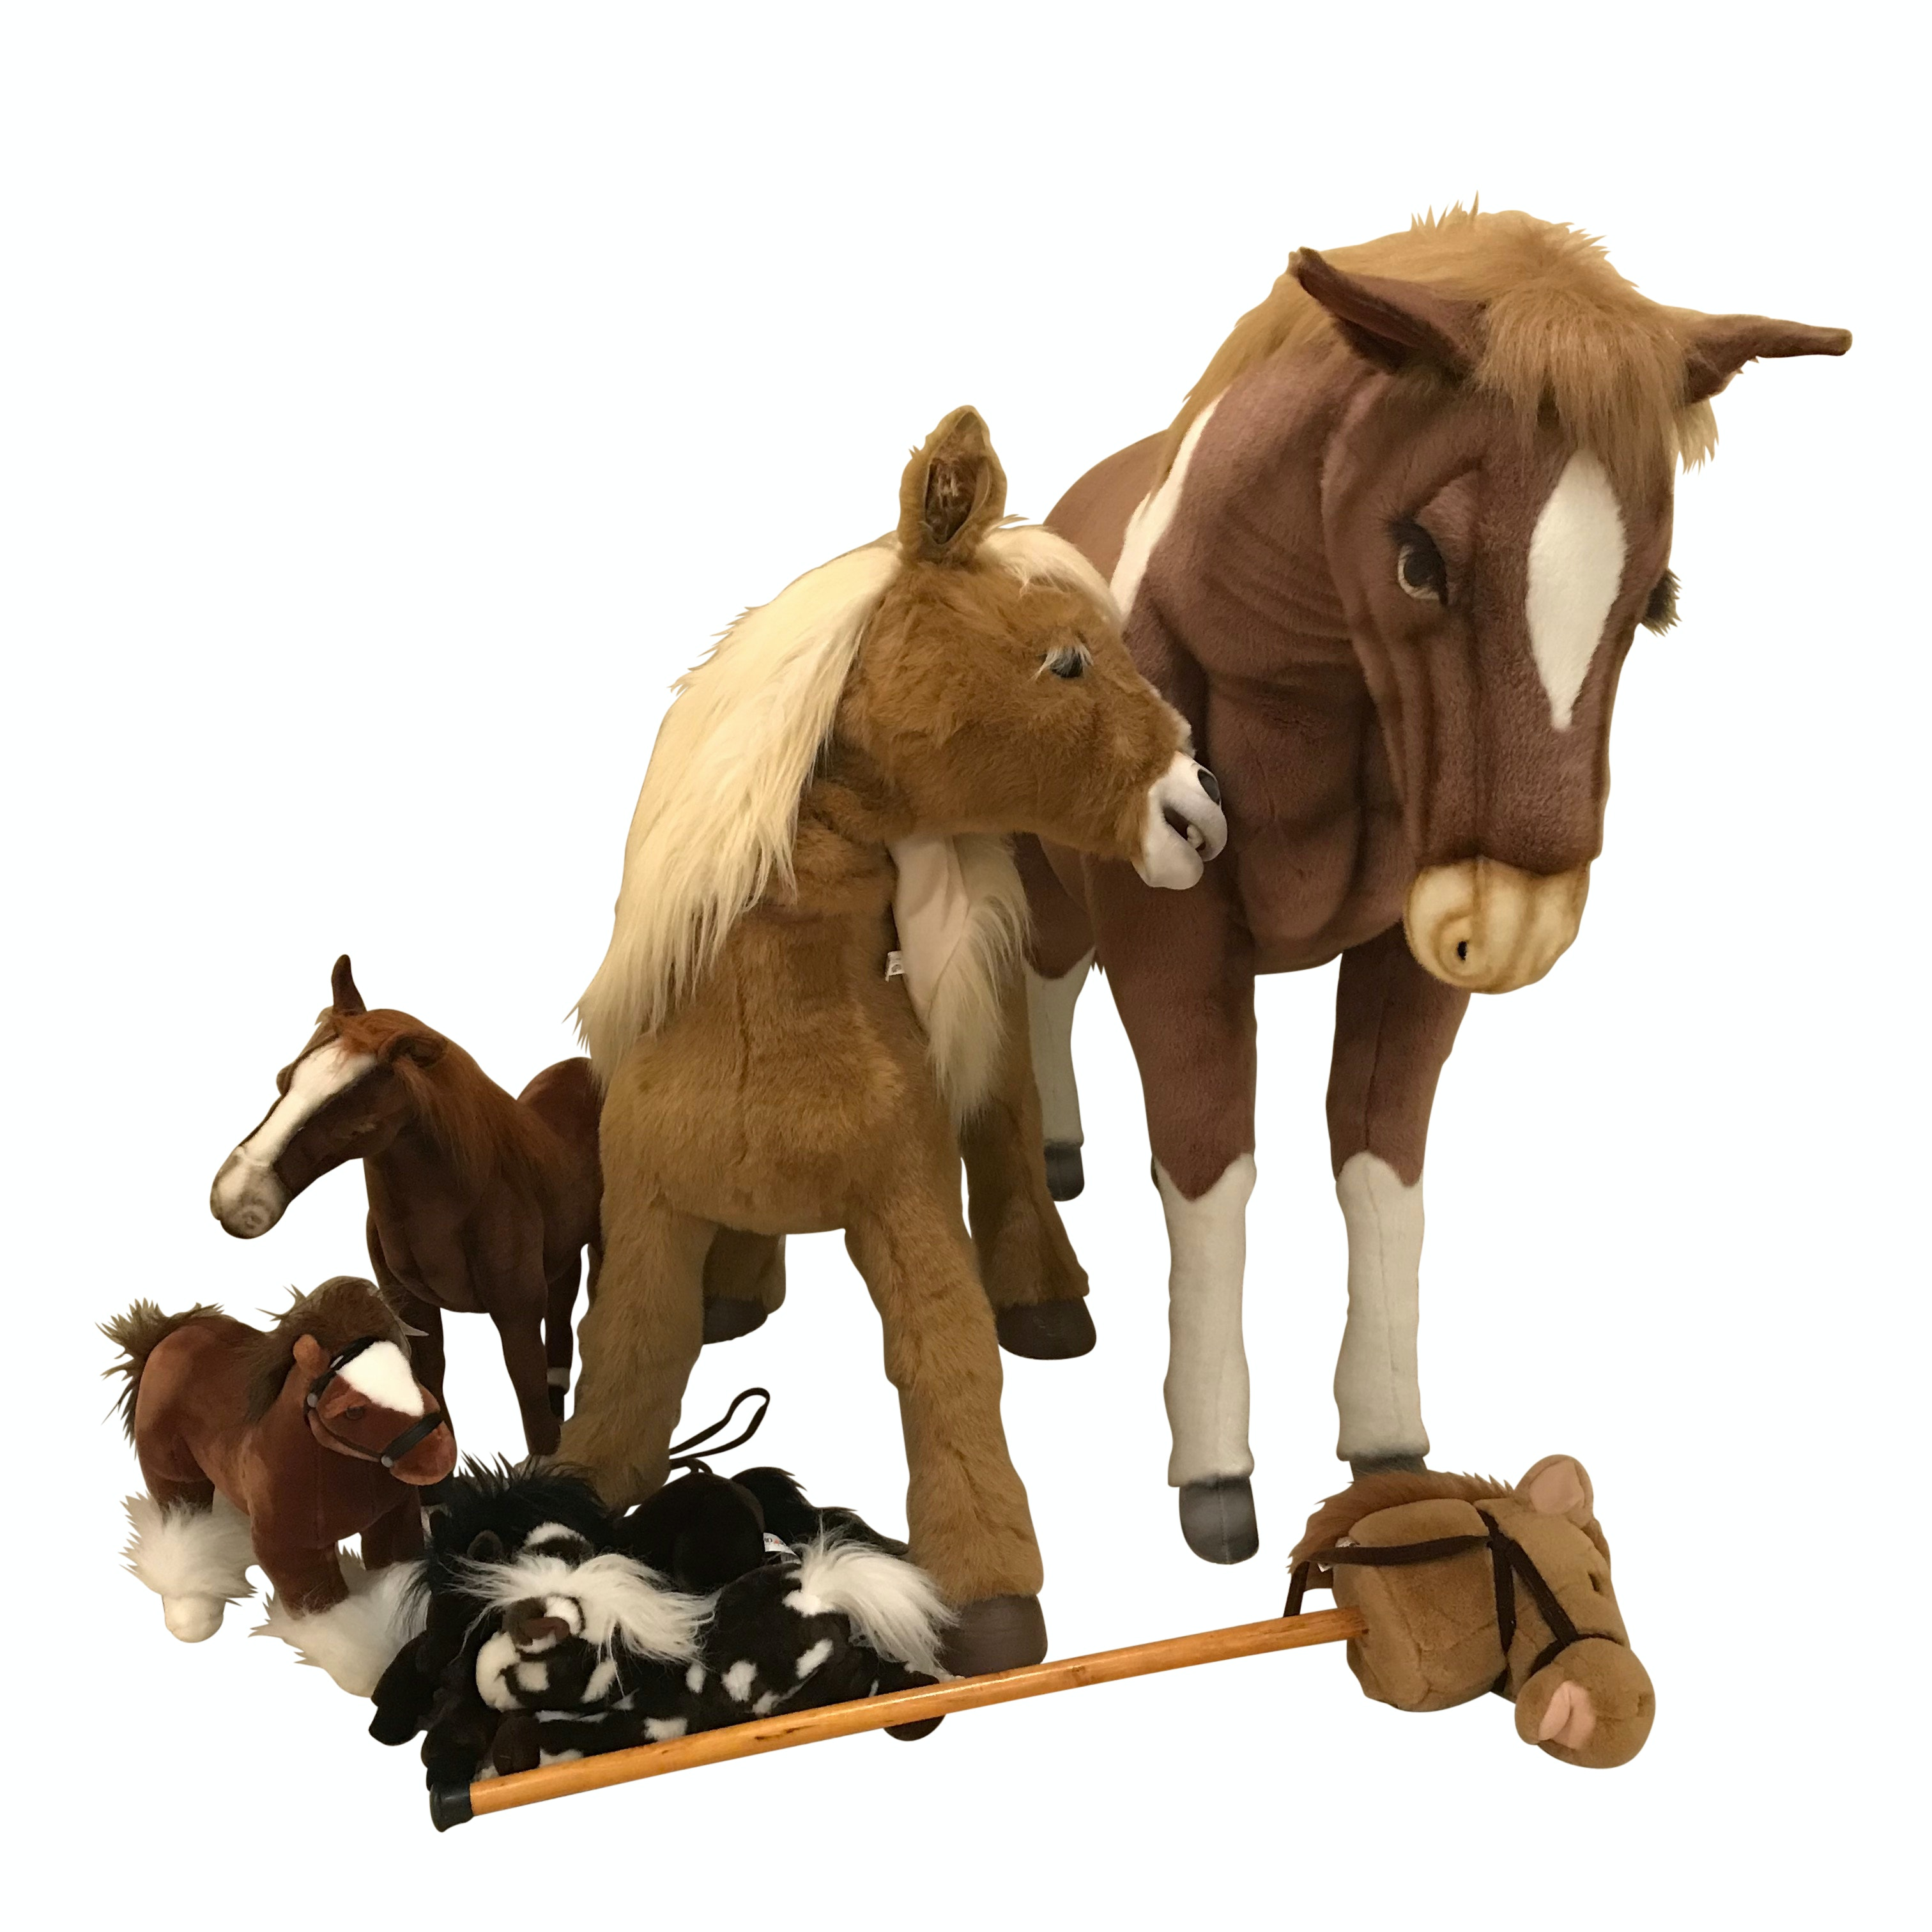 Large Stuffed Fao Schwarz Horse Interactive Horse And Stuffed Toys